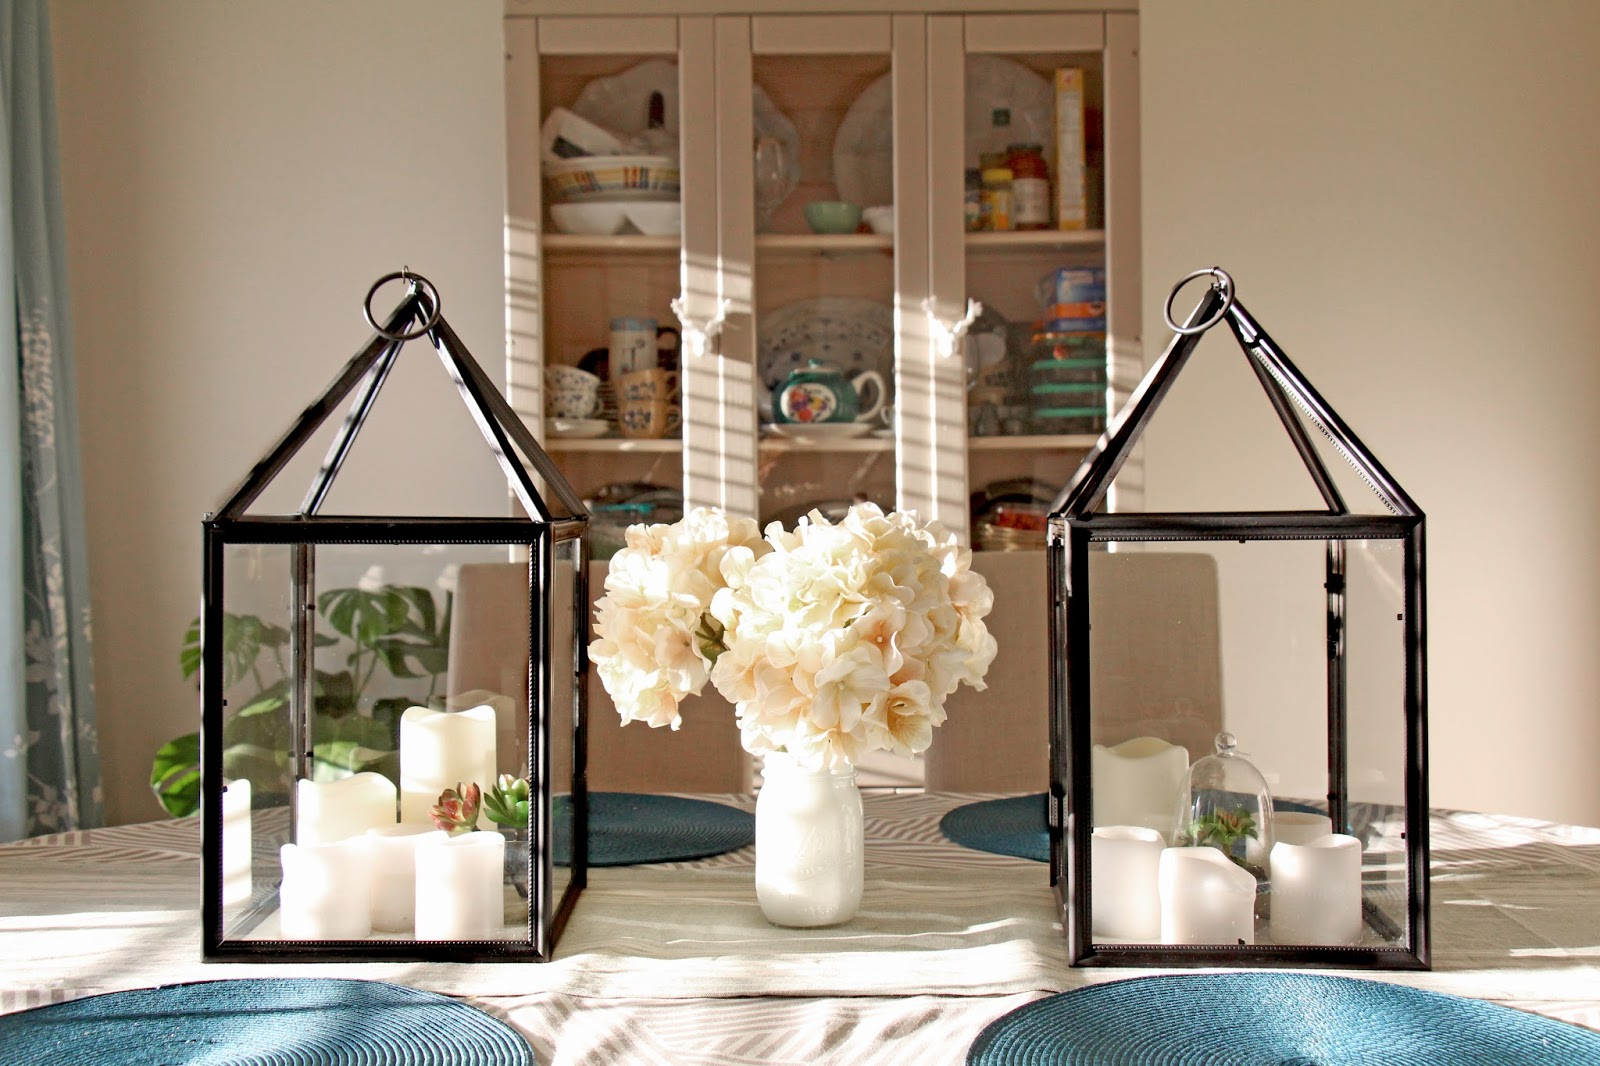 Grosgrain diy hurricane lanterns out of dollar store frames they look great as centerpieces jeuxipadfo Choice Image